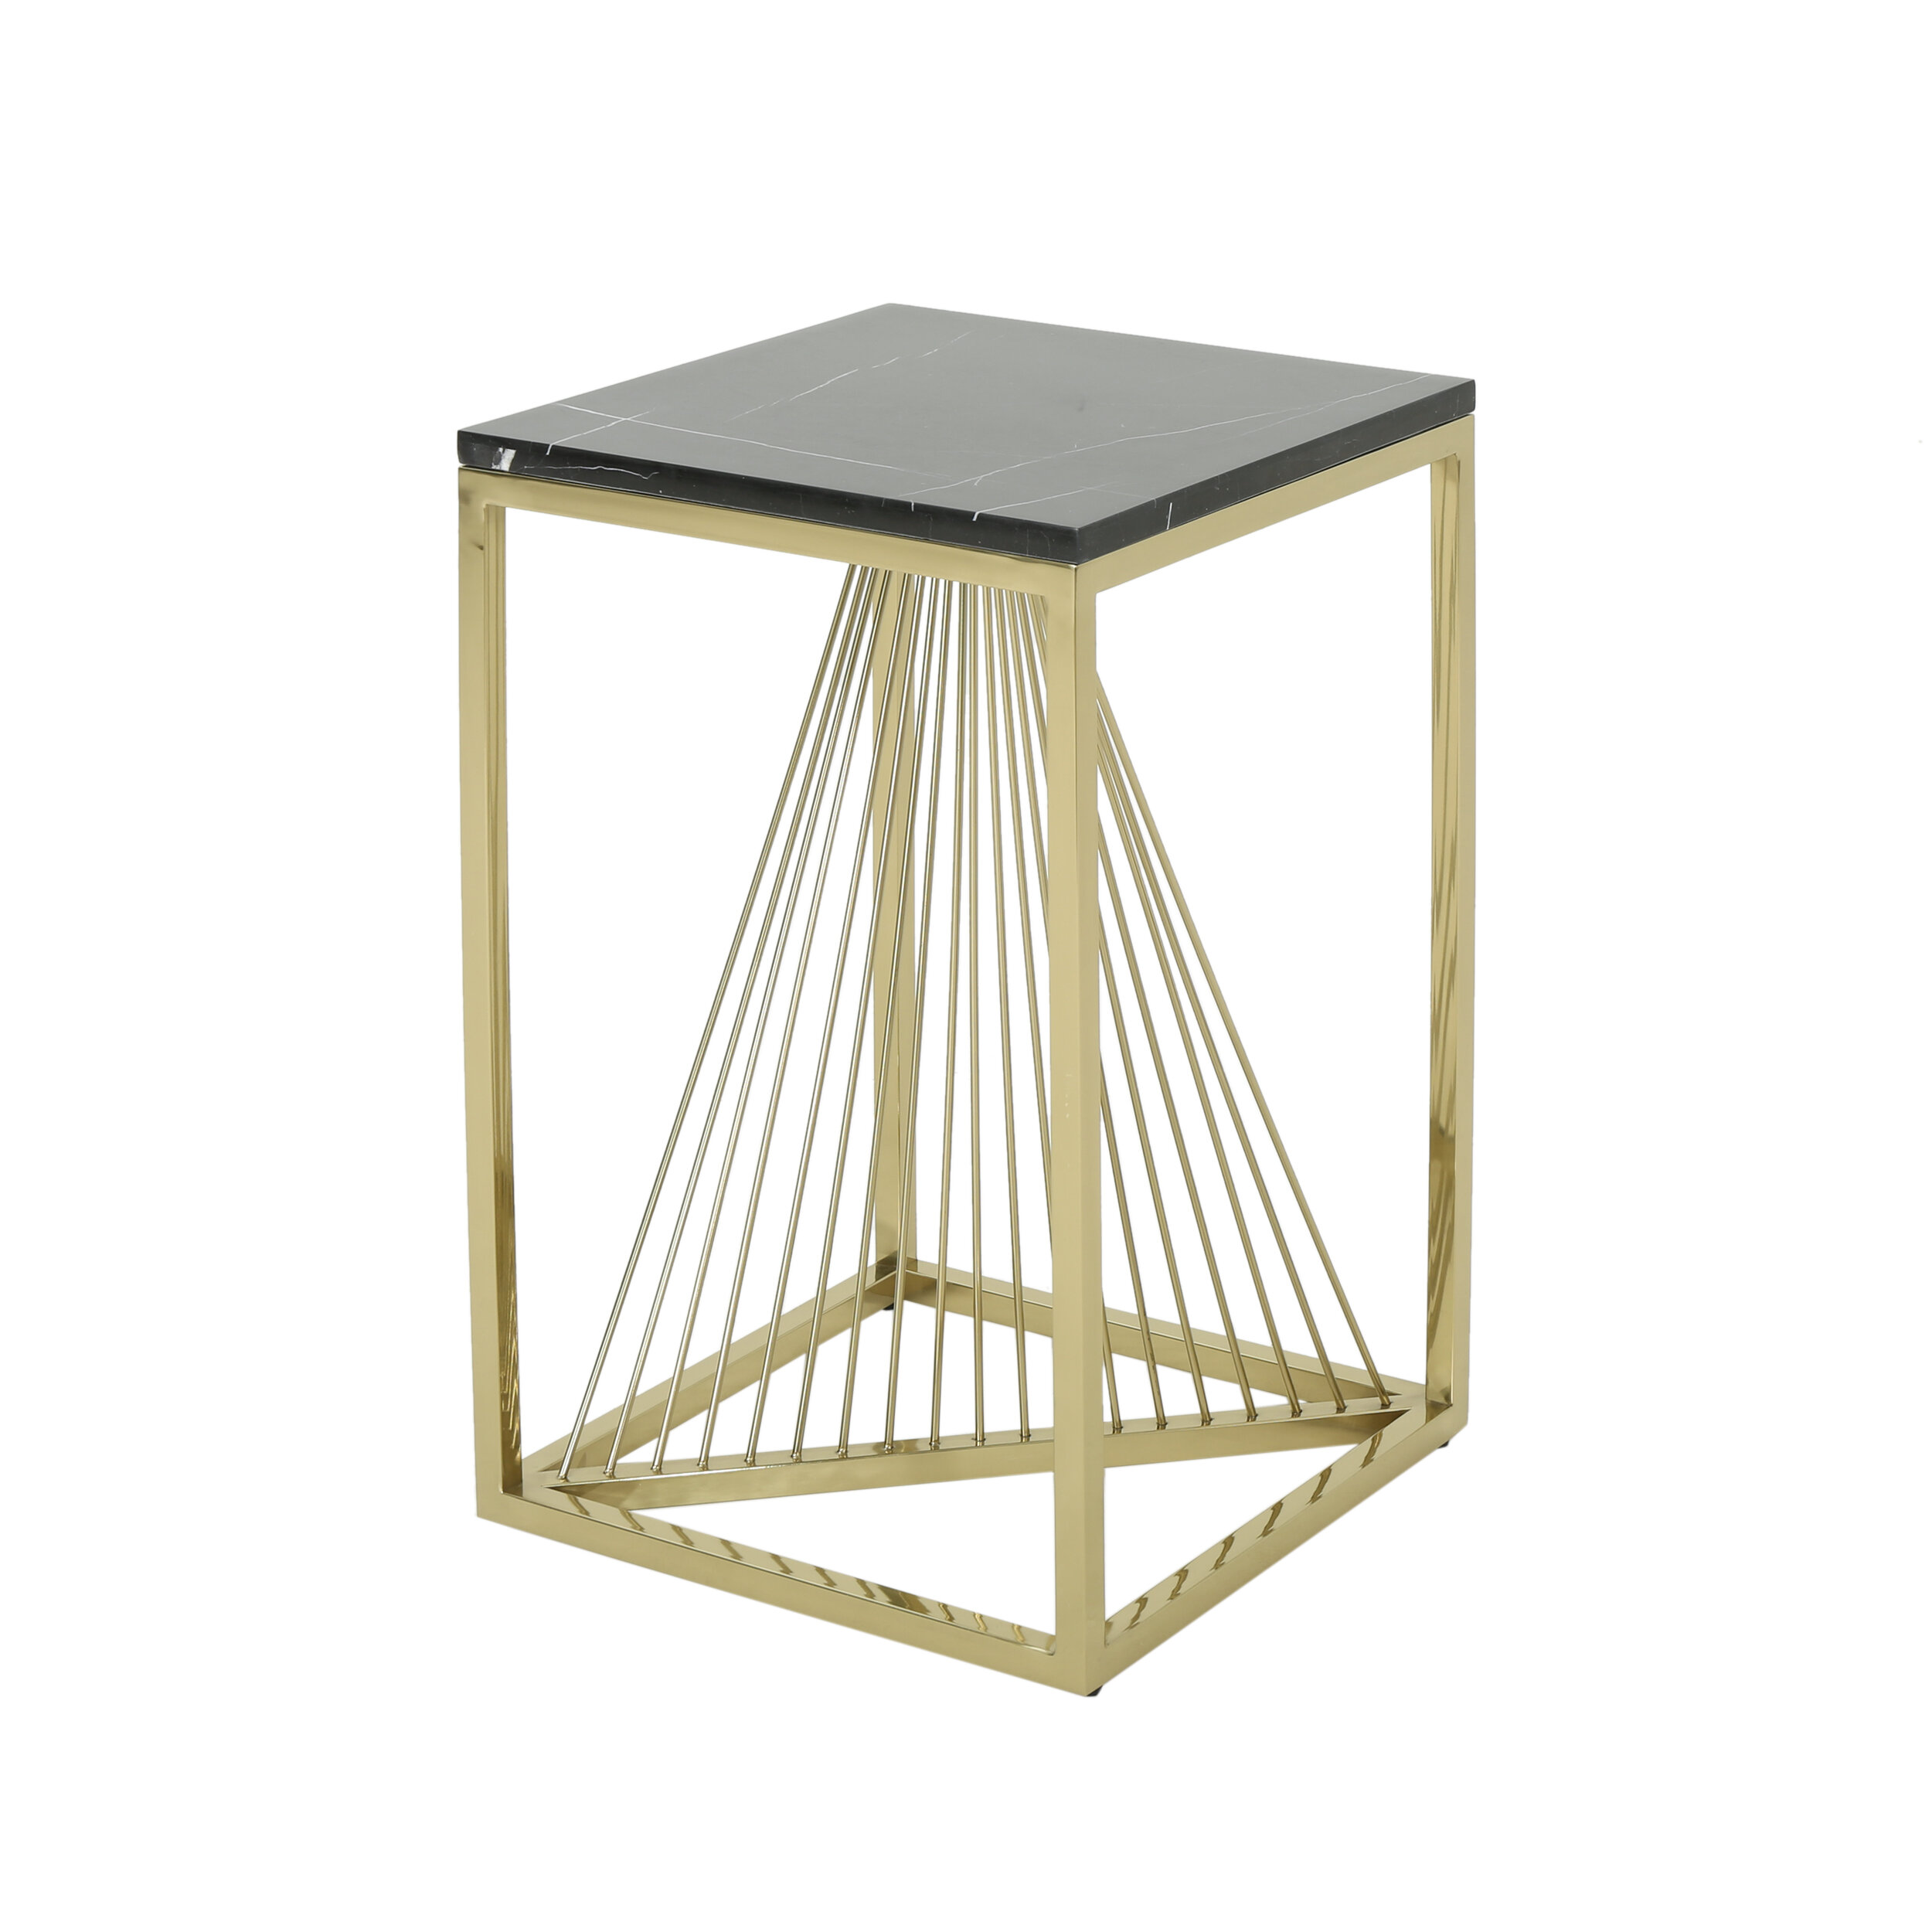 Picture of: Mercer41 Kyte Modern Faux Marble End Table Reviews